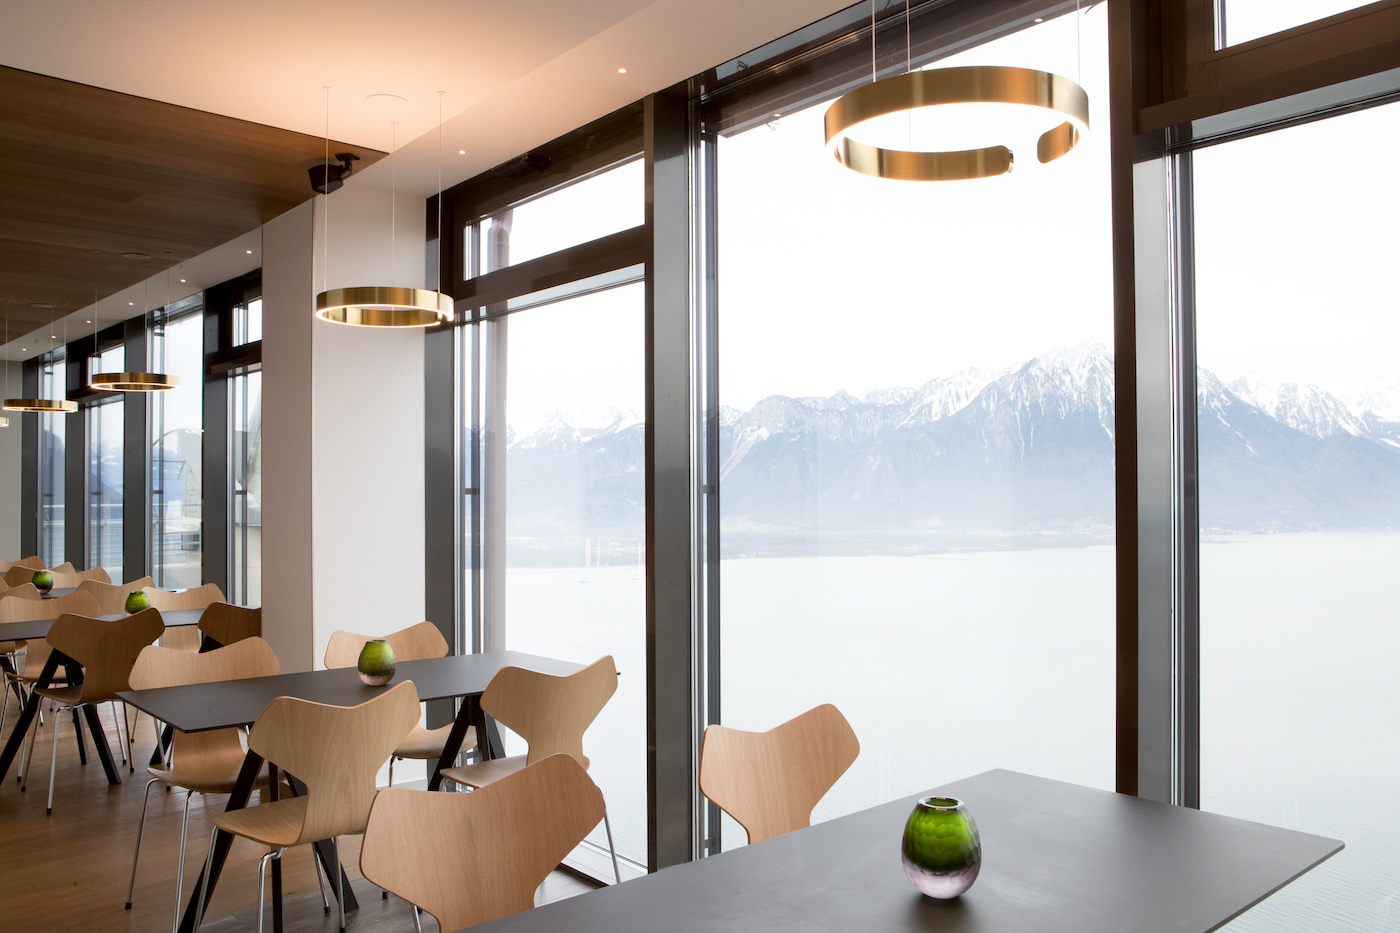 Lo Skyline bar all'interno del campus di Glion